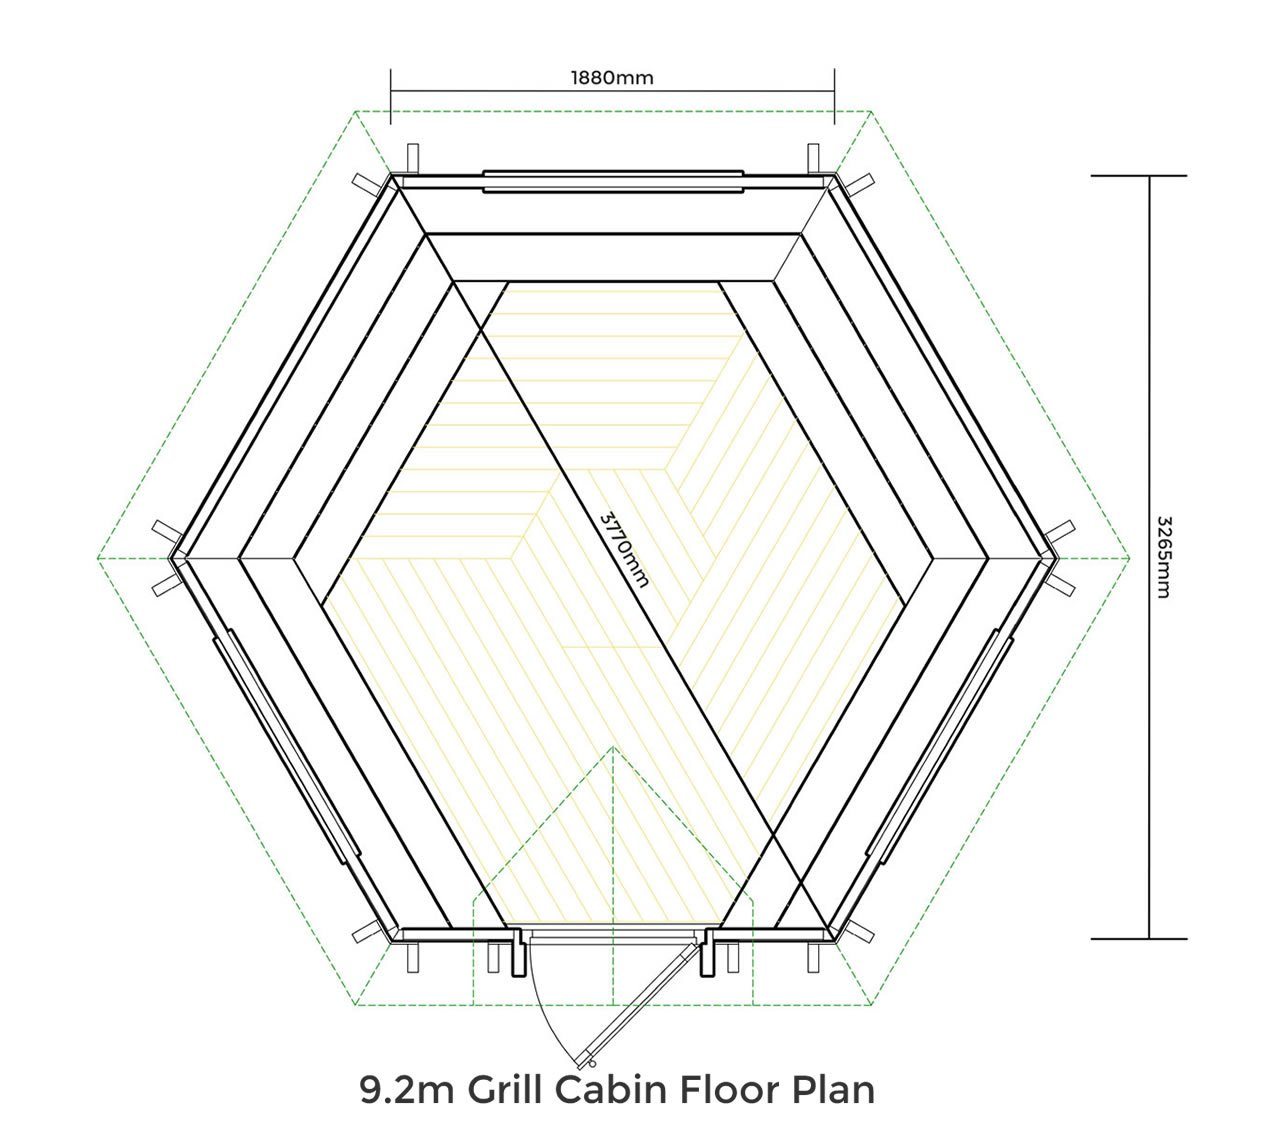 9.2m Medium Grill Cabin Floor Plan